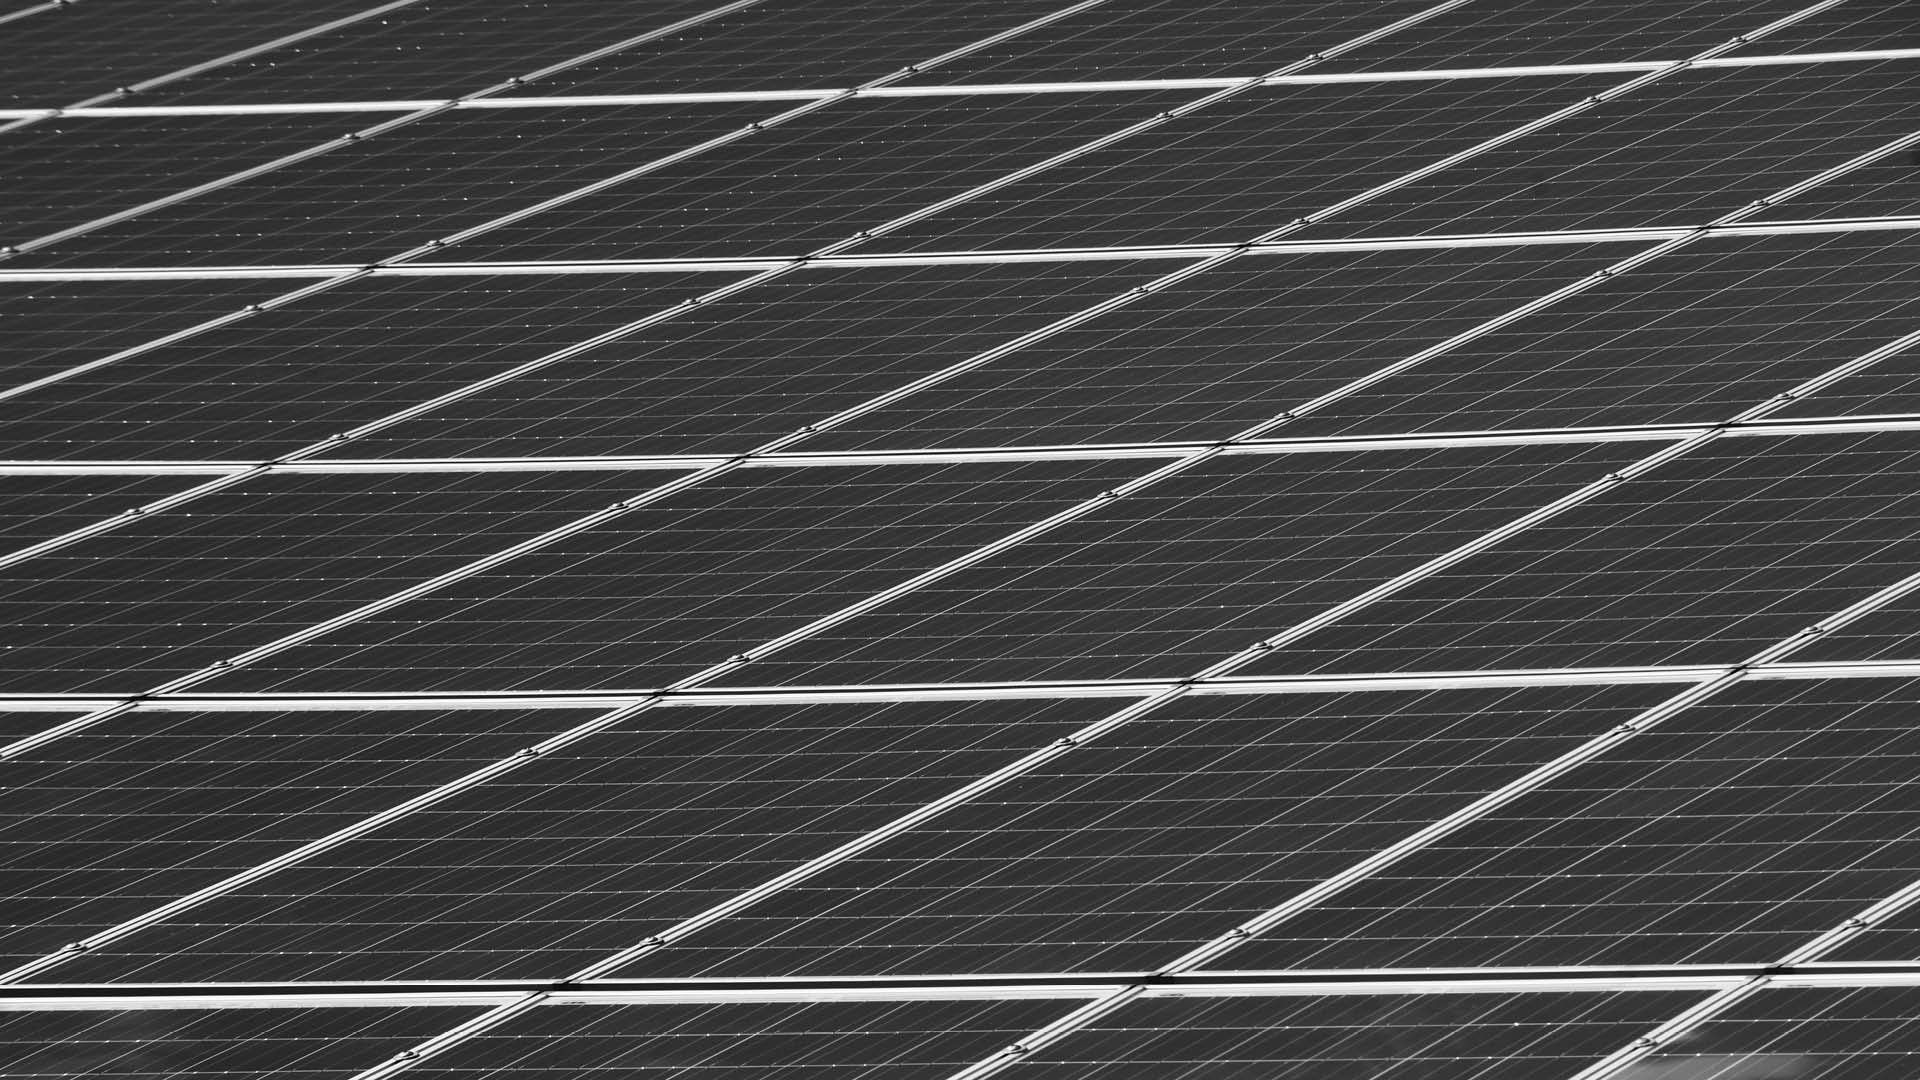 Solar Panel Installation Image